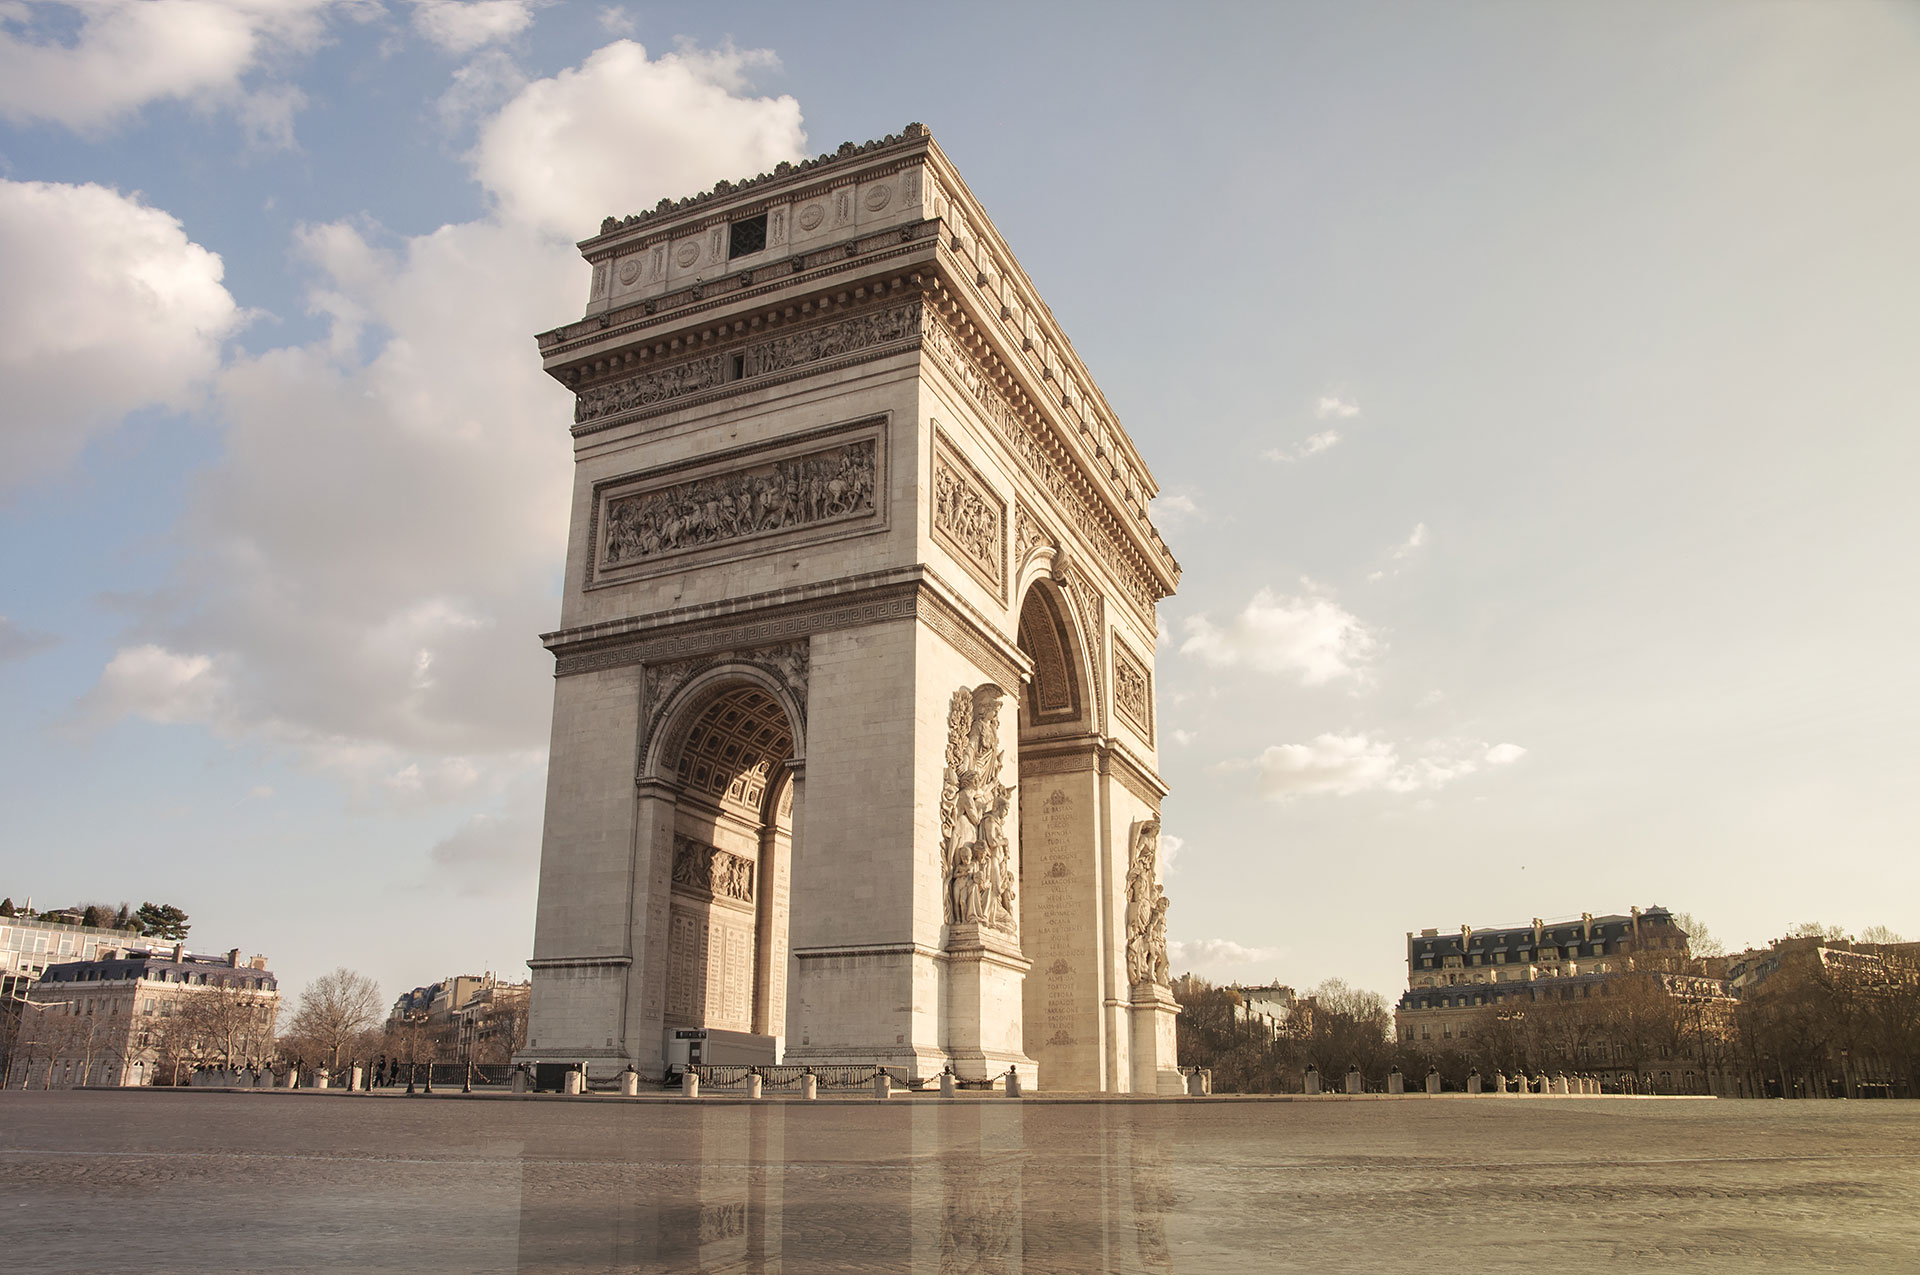 Paris Arc de Triomphe or The Triumphal Arch of Paris Charles-de-Gaulle Etoile, without anybody, no car, no pedestrian because of the quarantine due to the Coronavirus COVID-19 2020 , (Nos Dren)